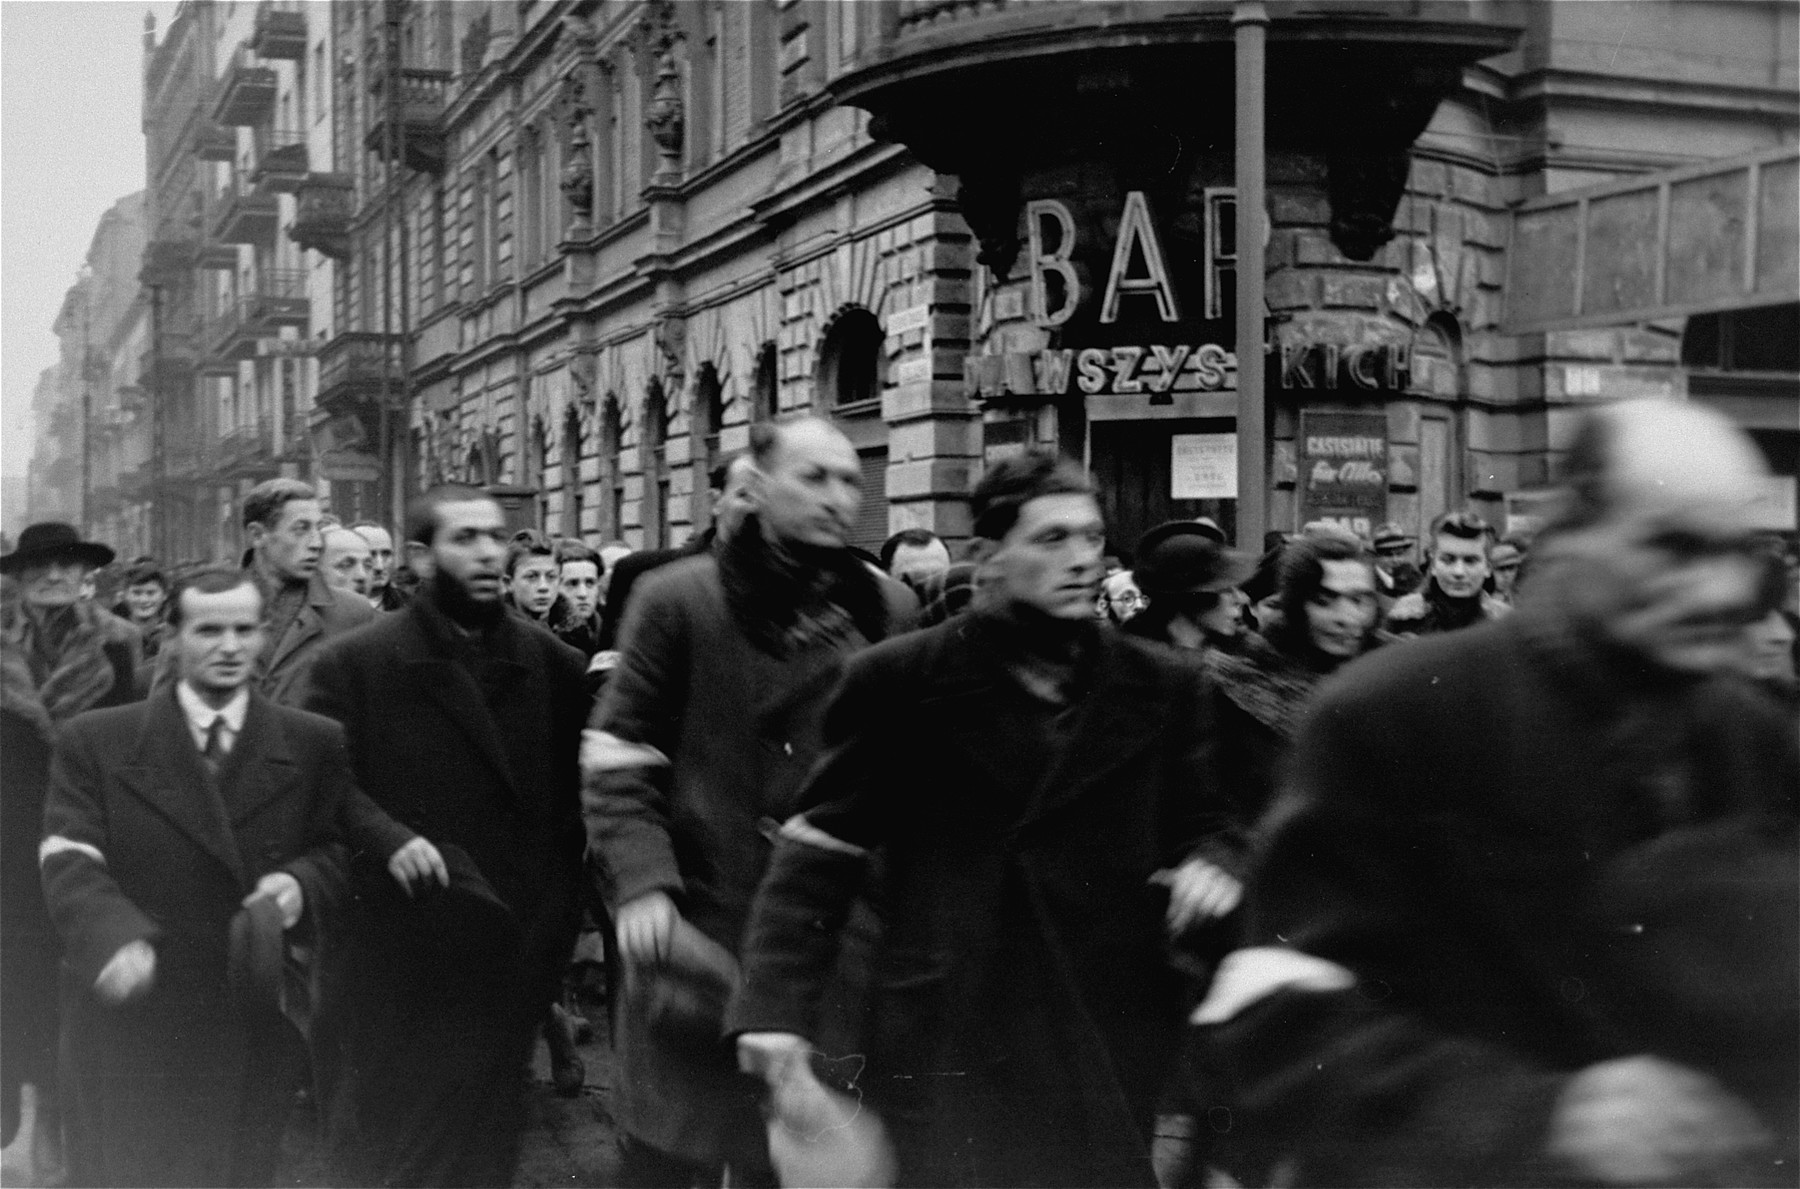 Jews crossing the intersection of Zelazna and Chlodna streets in the Warsaw ghetto doff their hats to the photographer, in accordance with the German order requiring Jews to remove their hats in the presence of German personnel.